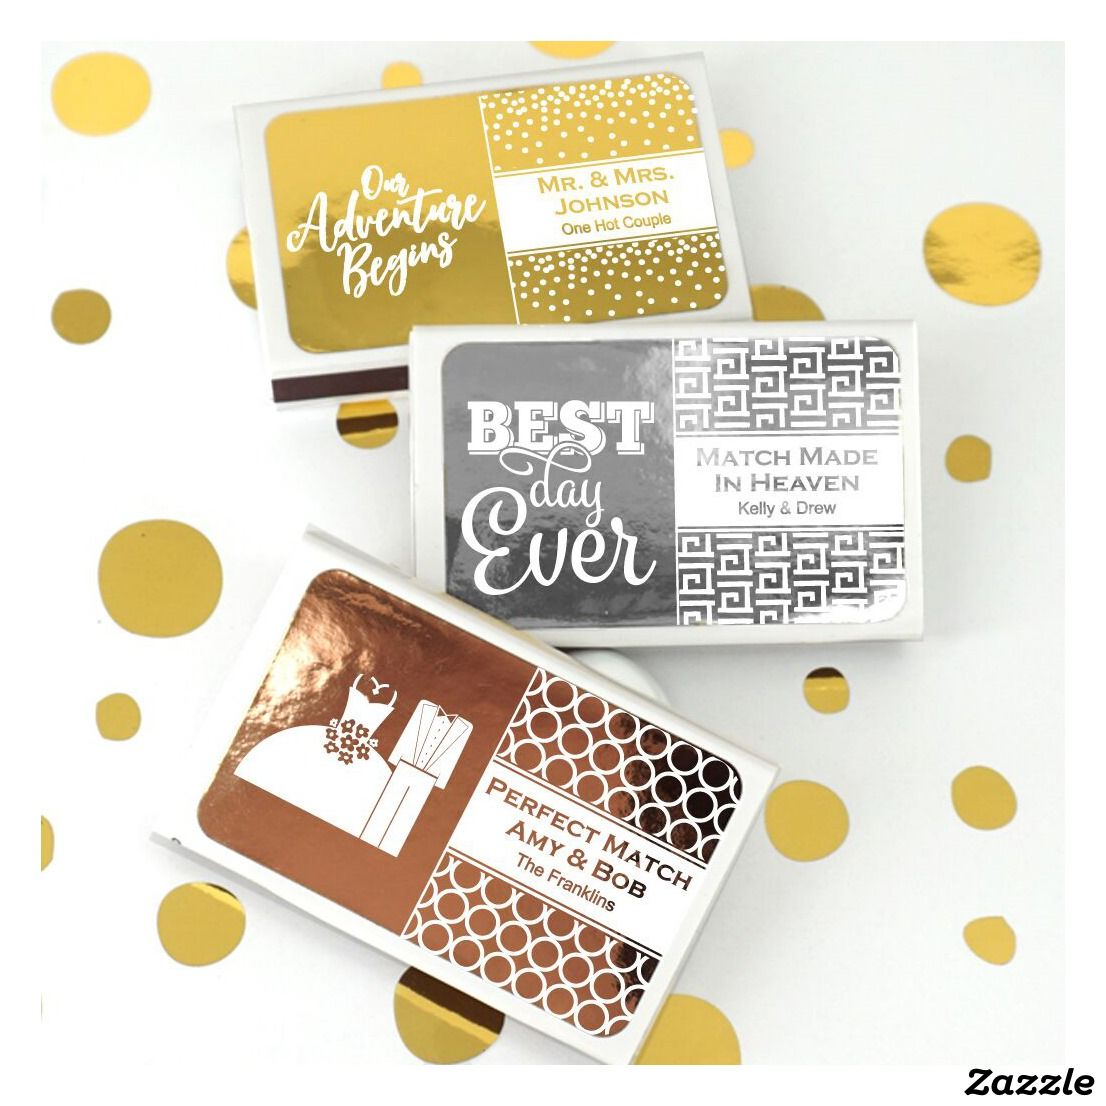 Metallic Foil Personalized Wedding Favor Matches | Personalized ...